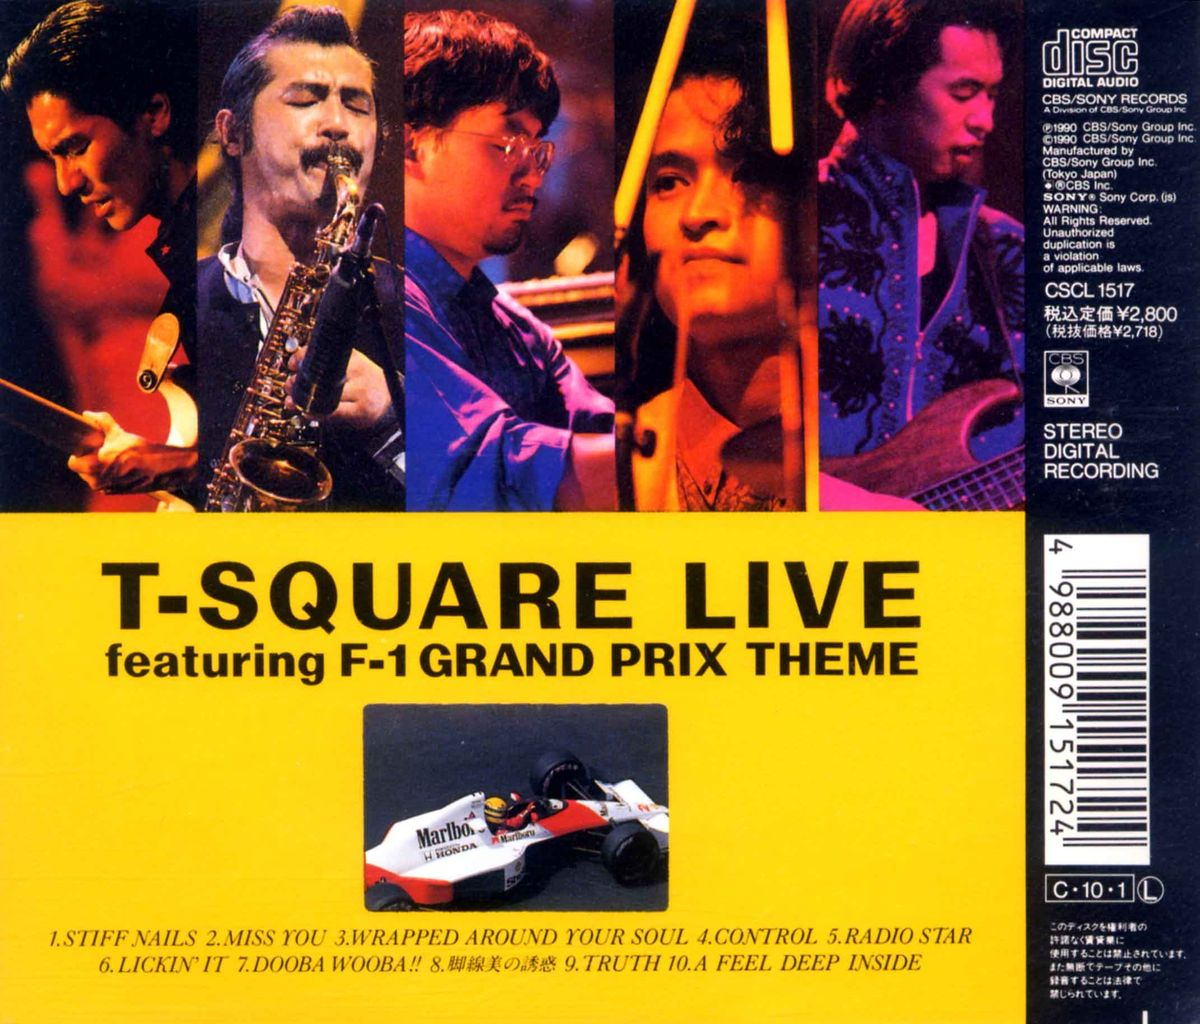 T-SQUARE LIVE FEATURING F-1 GRAND PRIX THEME-2